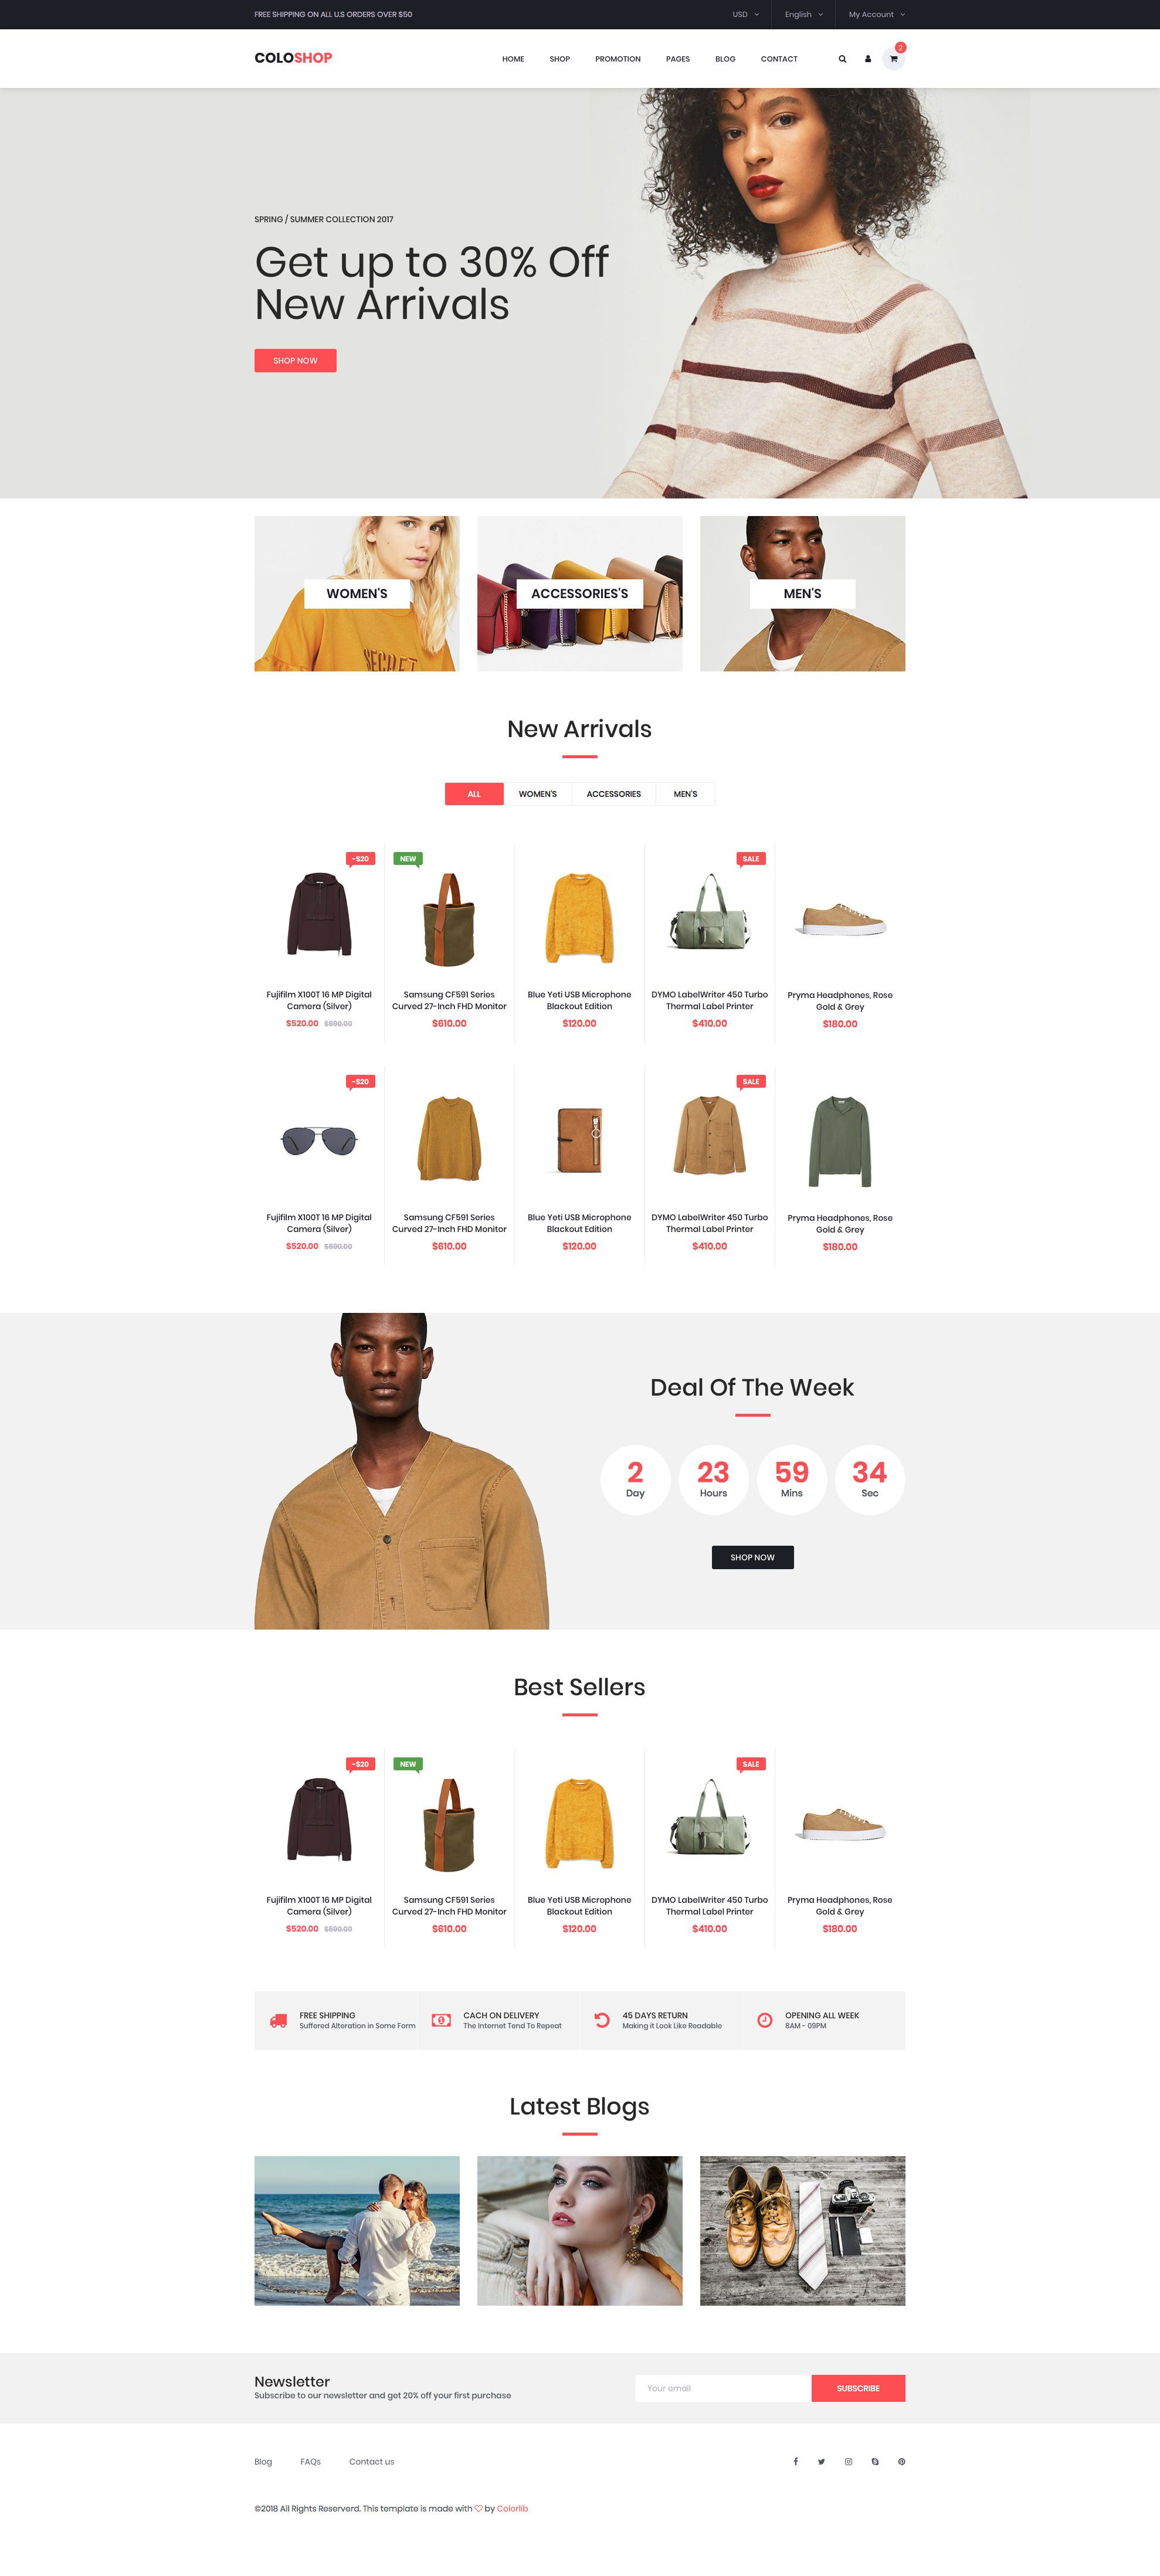 Coloshop Free Responsive Html5 Bootstrap Ecommerce Template Htmltemplates Co Ecommerce Template Ecommerce Website Template Free Html Website Templates